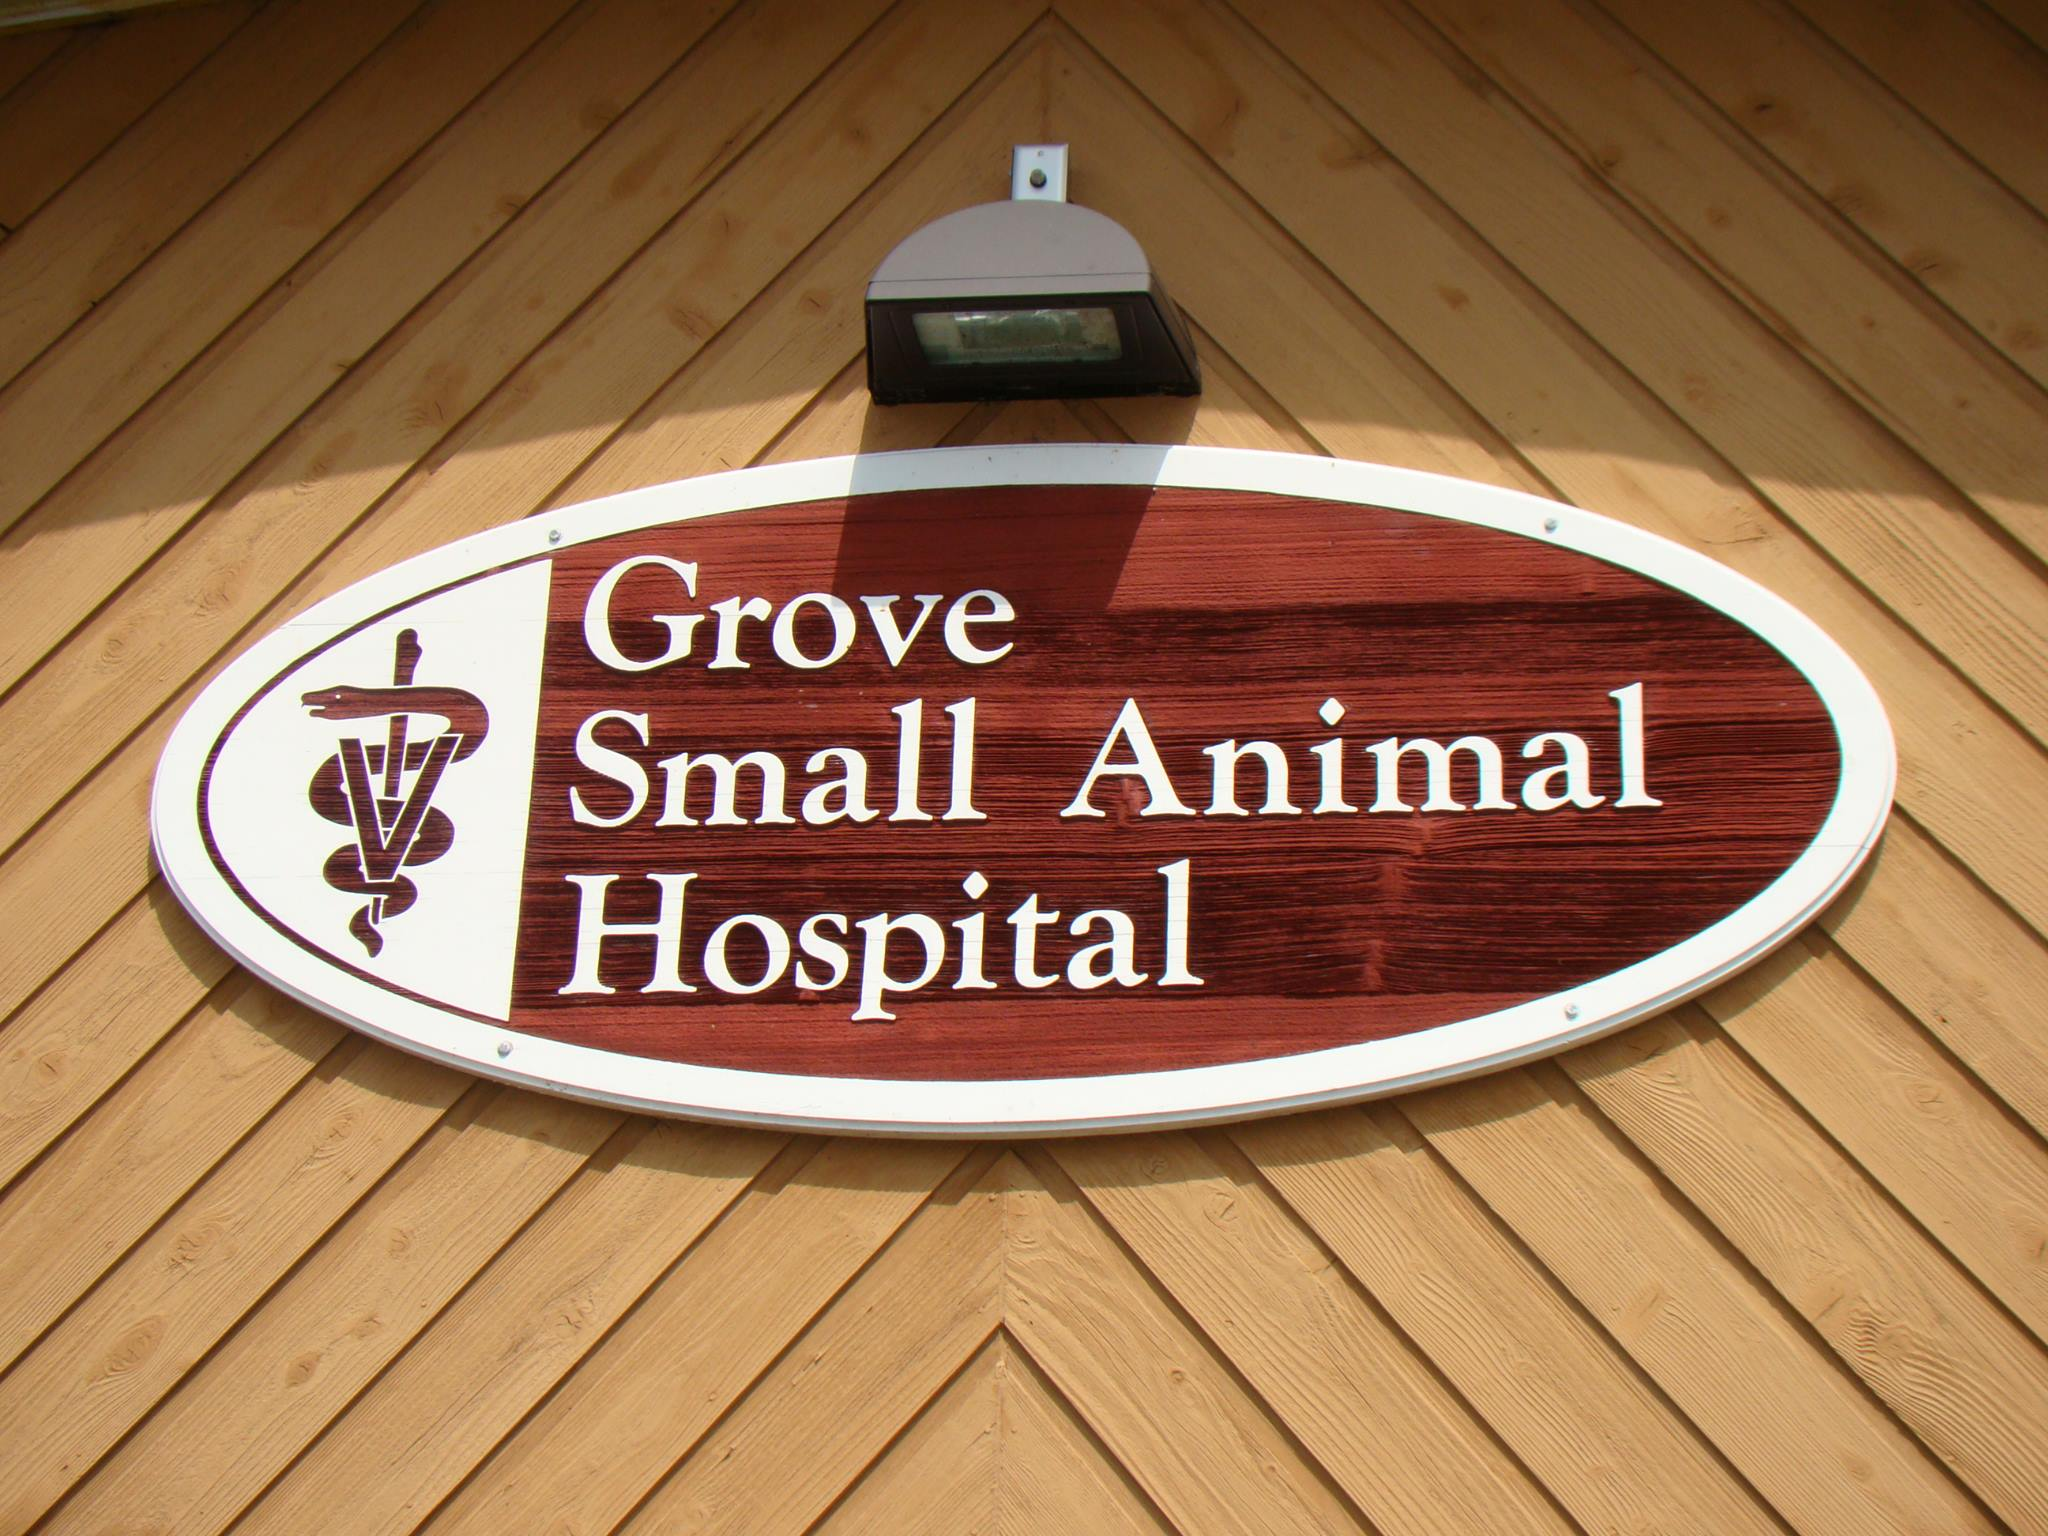 Grove Small Animal Hospital, Inc.